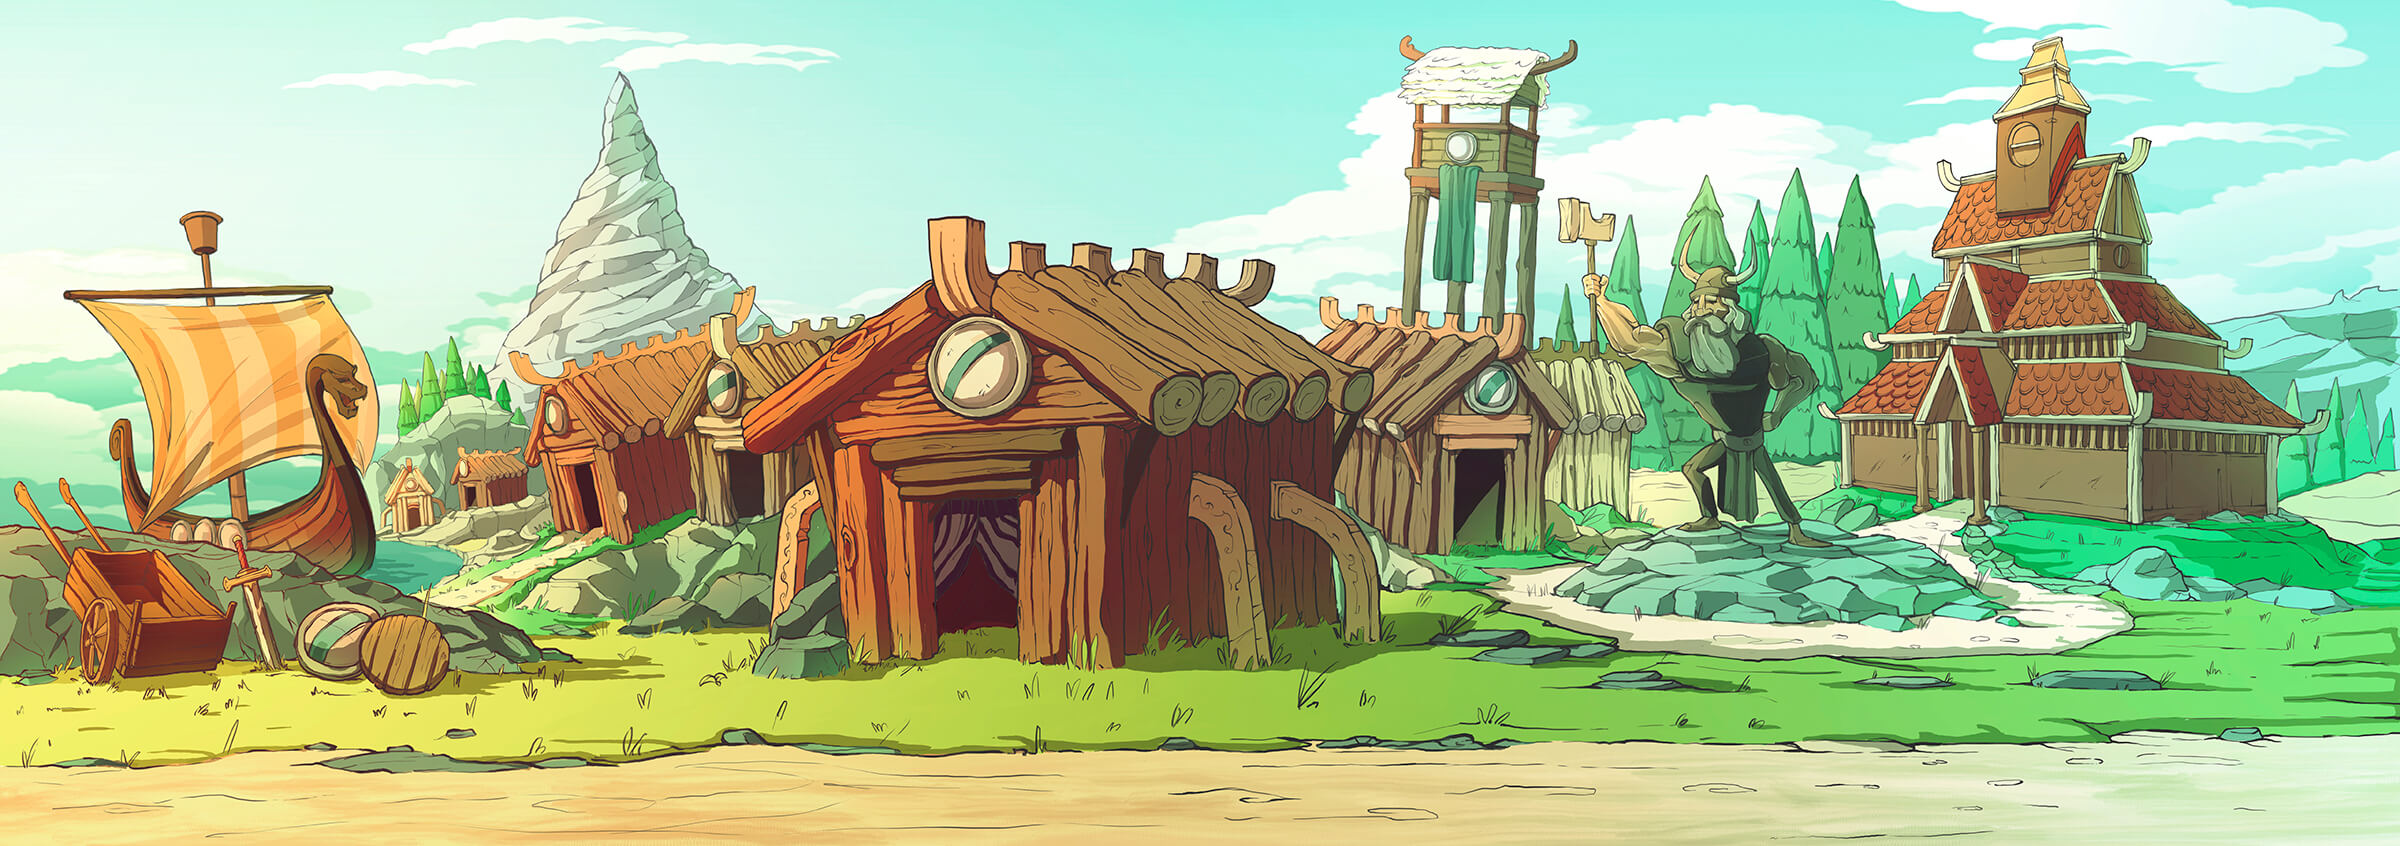 Cartoon-style depiction of an ancient viking village with wooden huts, a longboat, and a statue of a hammer-wielding warrior.